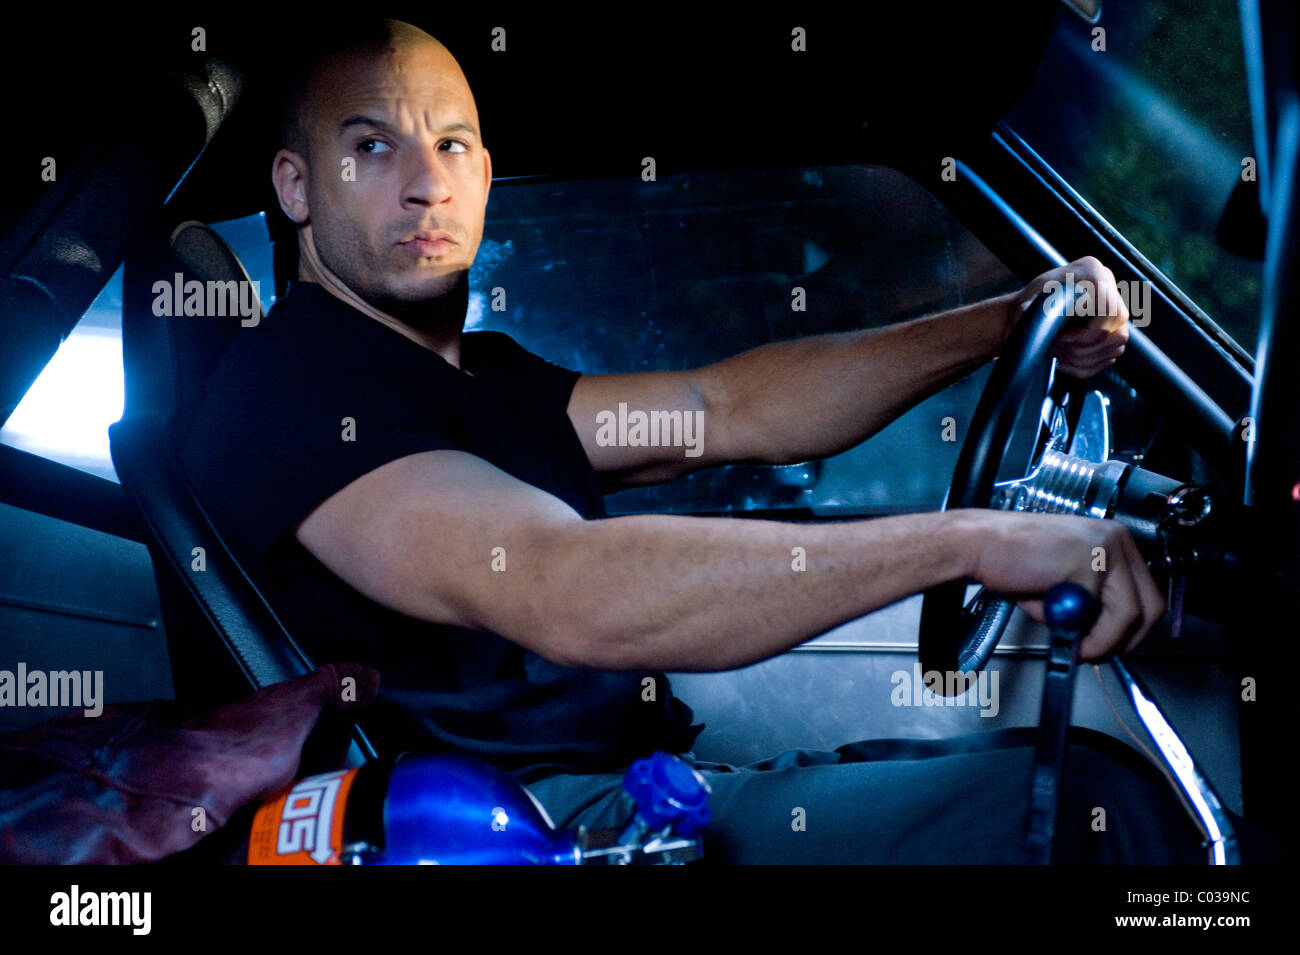 VIN DIESEL FAST & FURIOUS; THE FAST AND THE FURIOUS 4 (2009) Stock Photo